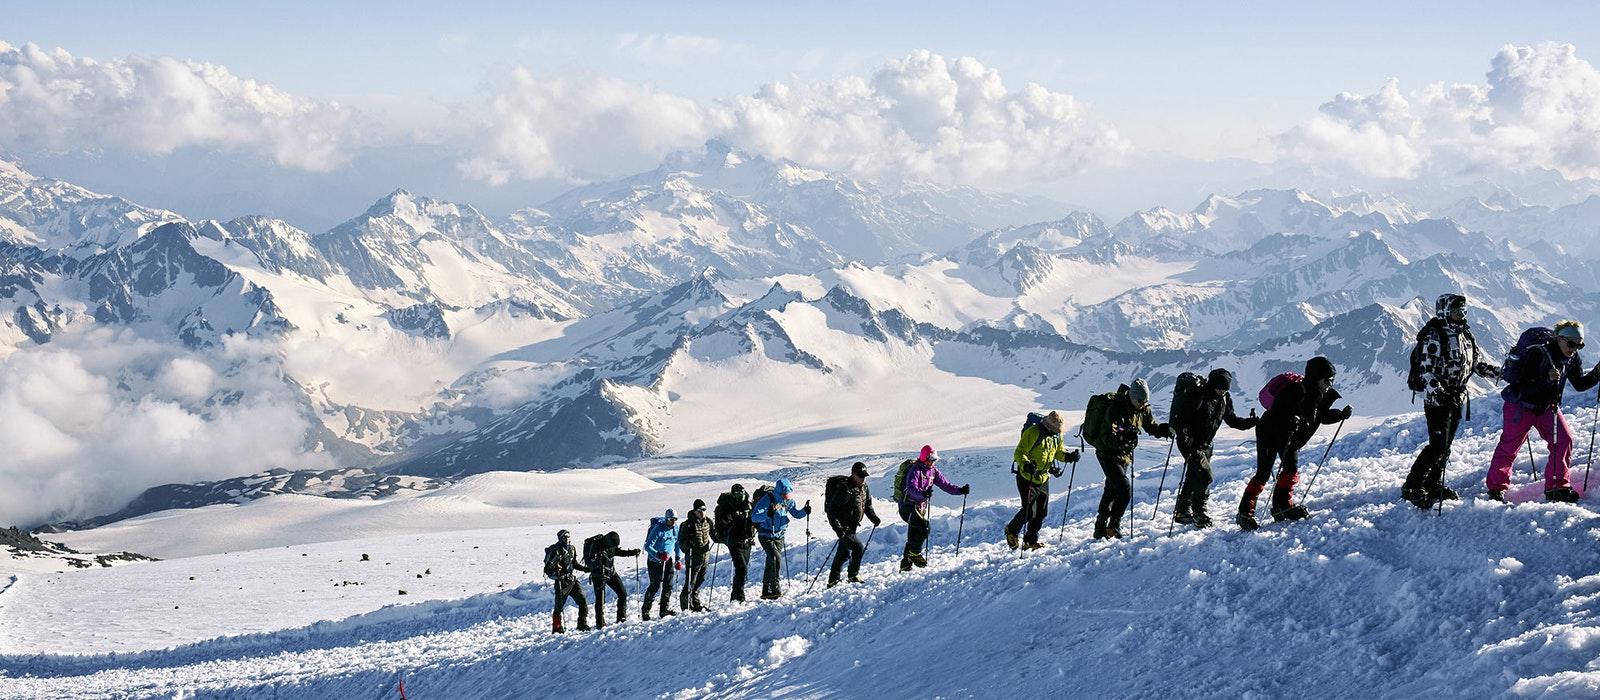 Europe's tallest peak is not in the Alps, but in the Caucasus mountains. Mount Elbrus towers at 18,510 feet, making it one of the Seven Summits—the tallest mountains on each continent.